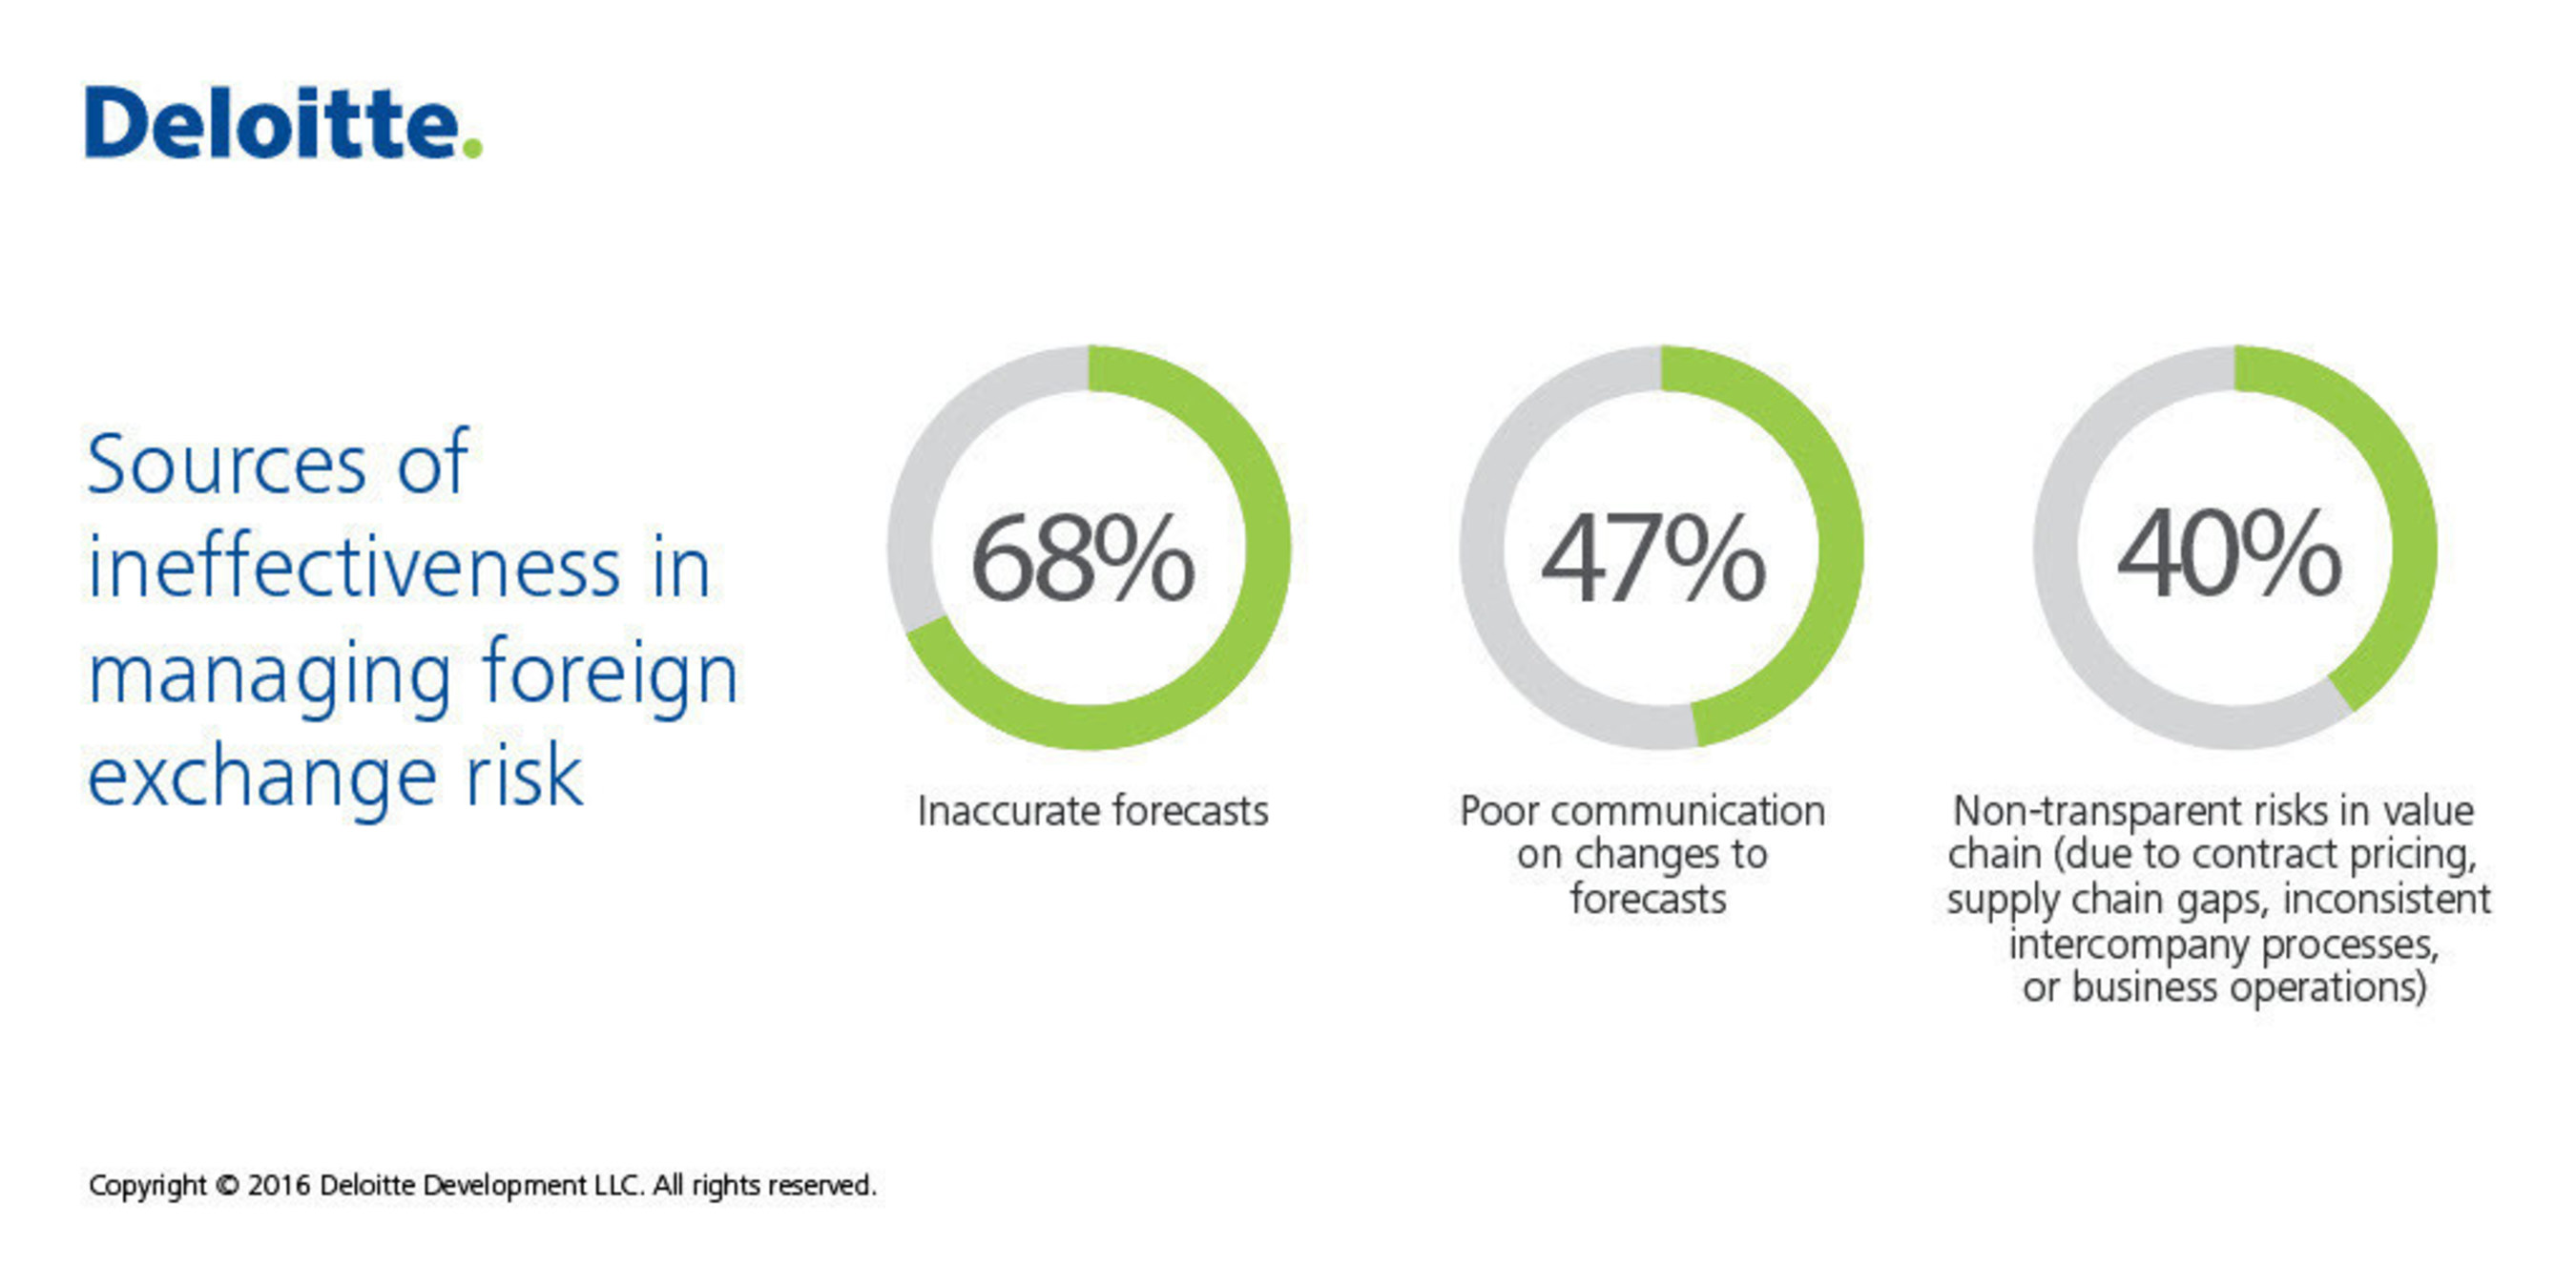 Findings from Deloitte's Global survey on foreign exchange risk show lack of exposures visibility as key consideration for corporations' inability to effectively manage currency risk.